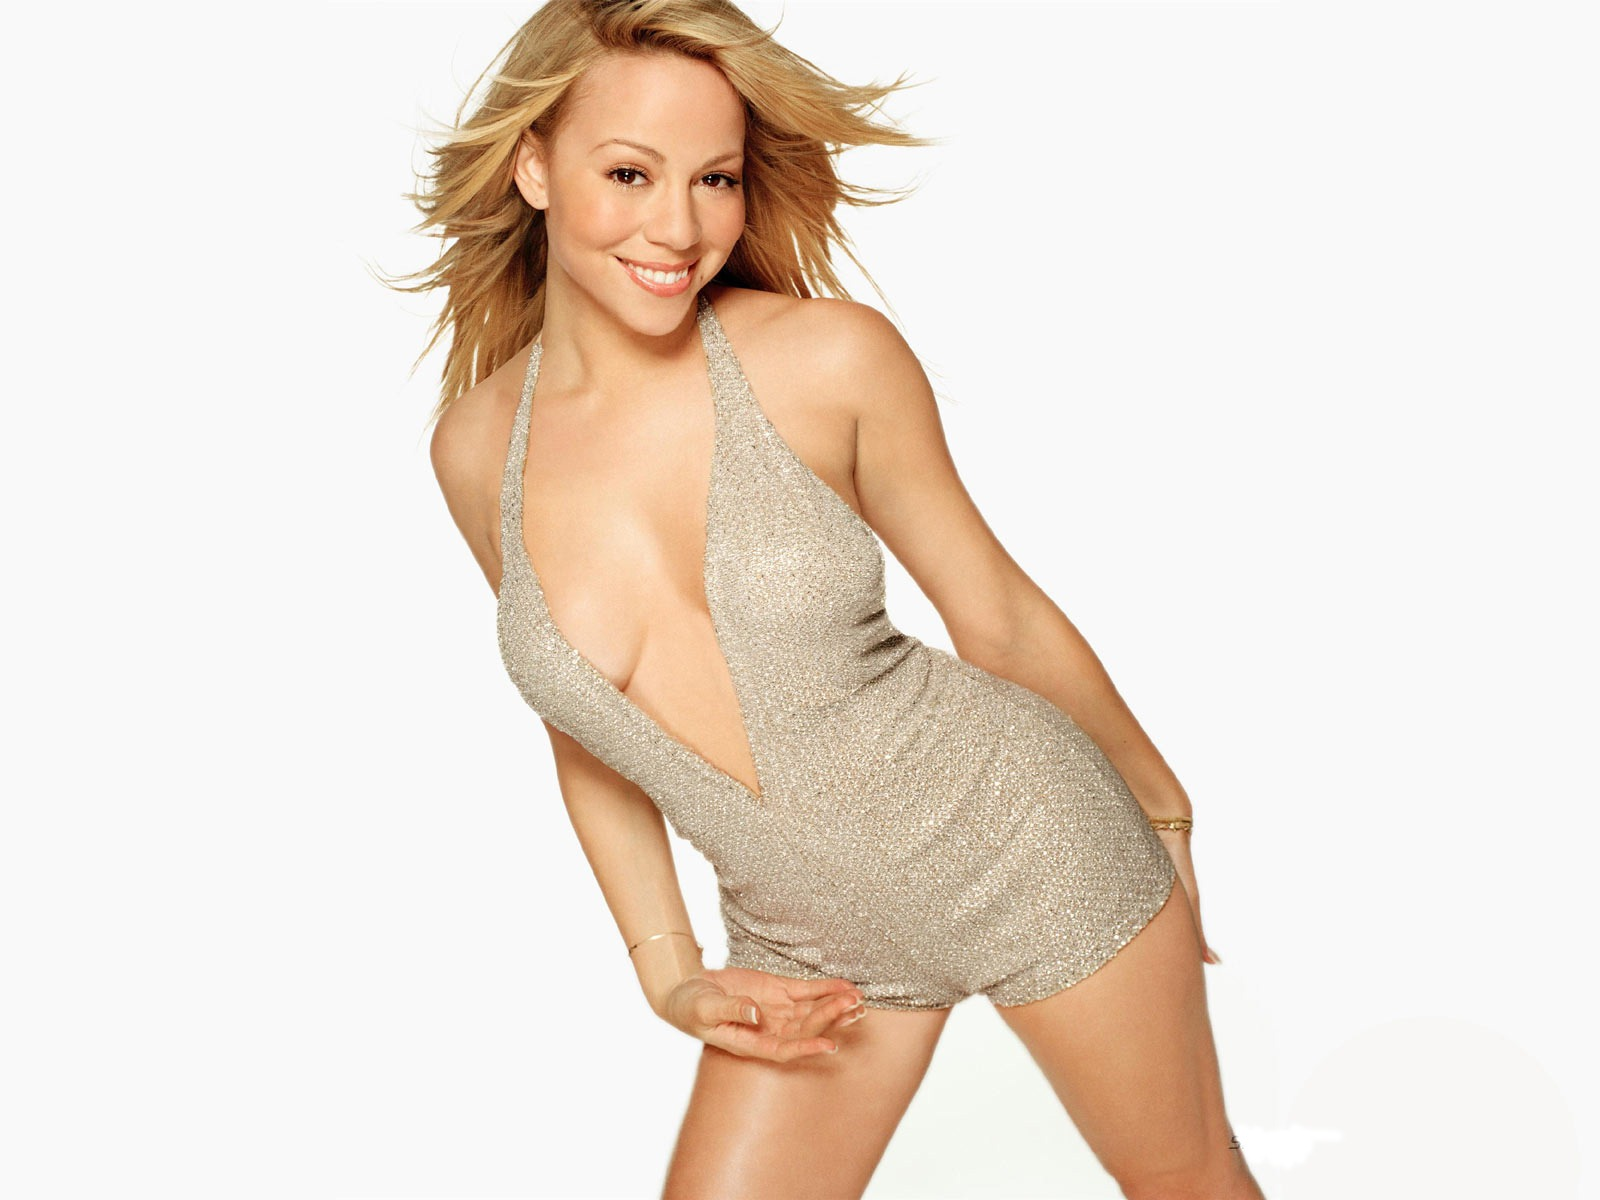 Mariah Carey Hot Mariah Carey Photos